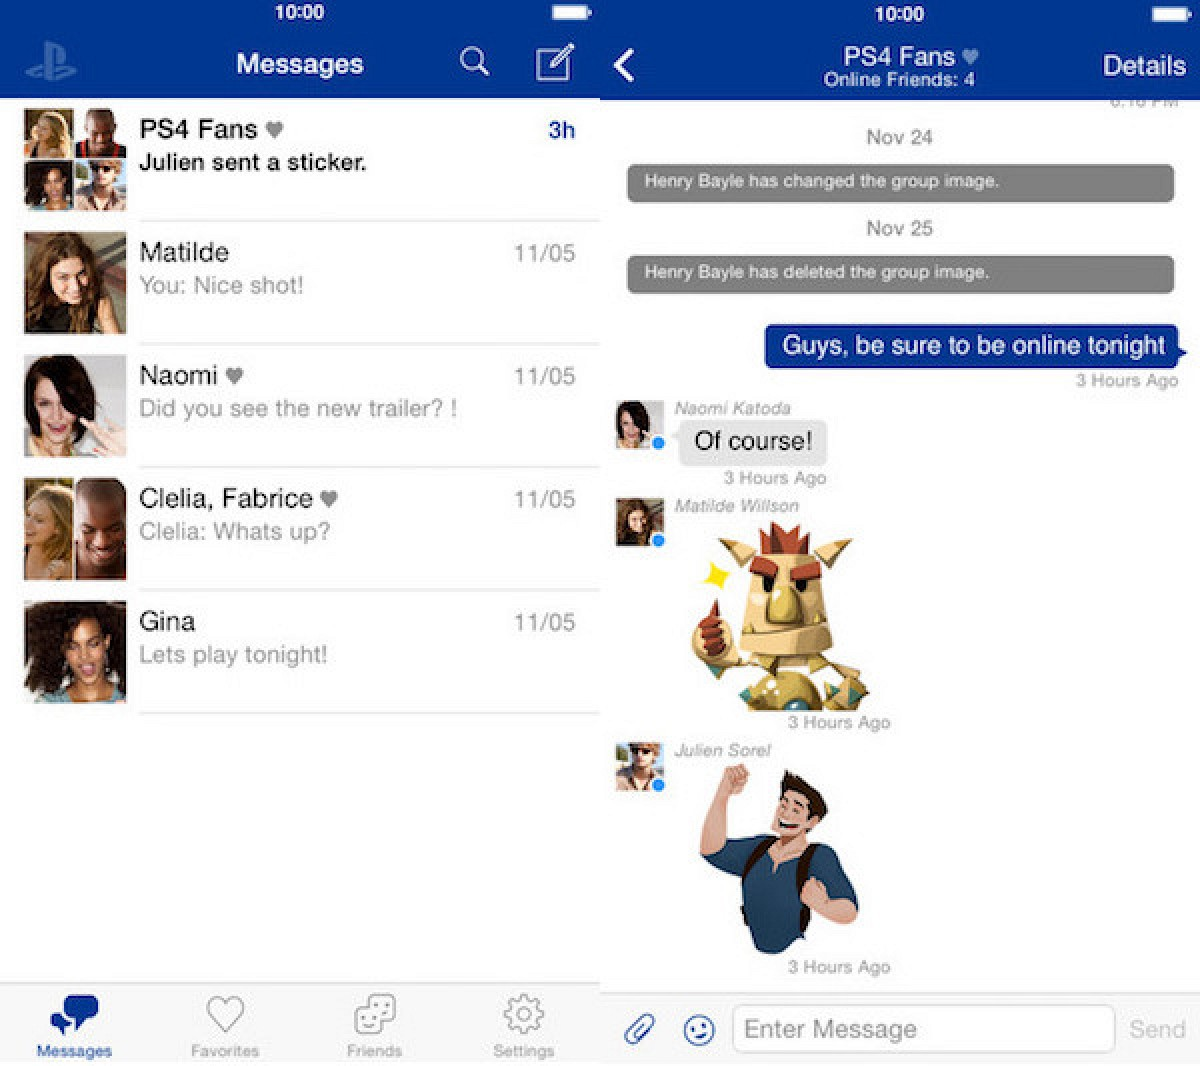 Sony Launches 'PlayStation Messages' App for iOS - MacRumors